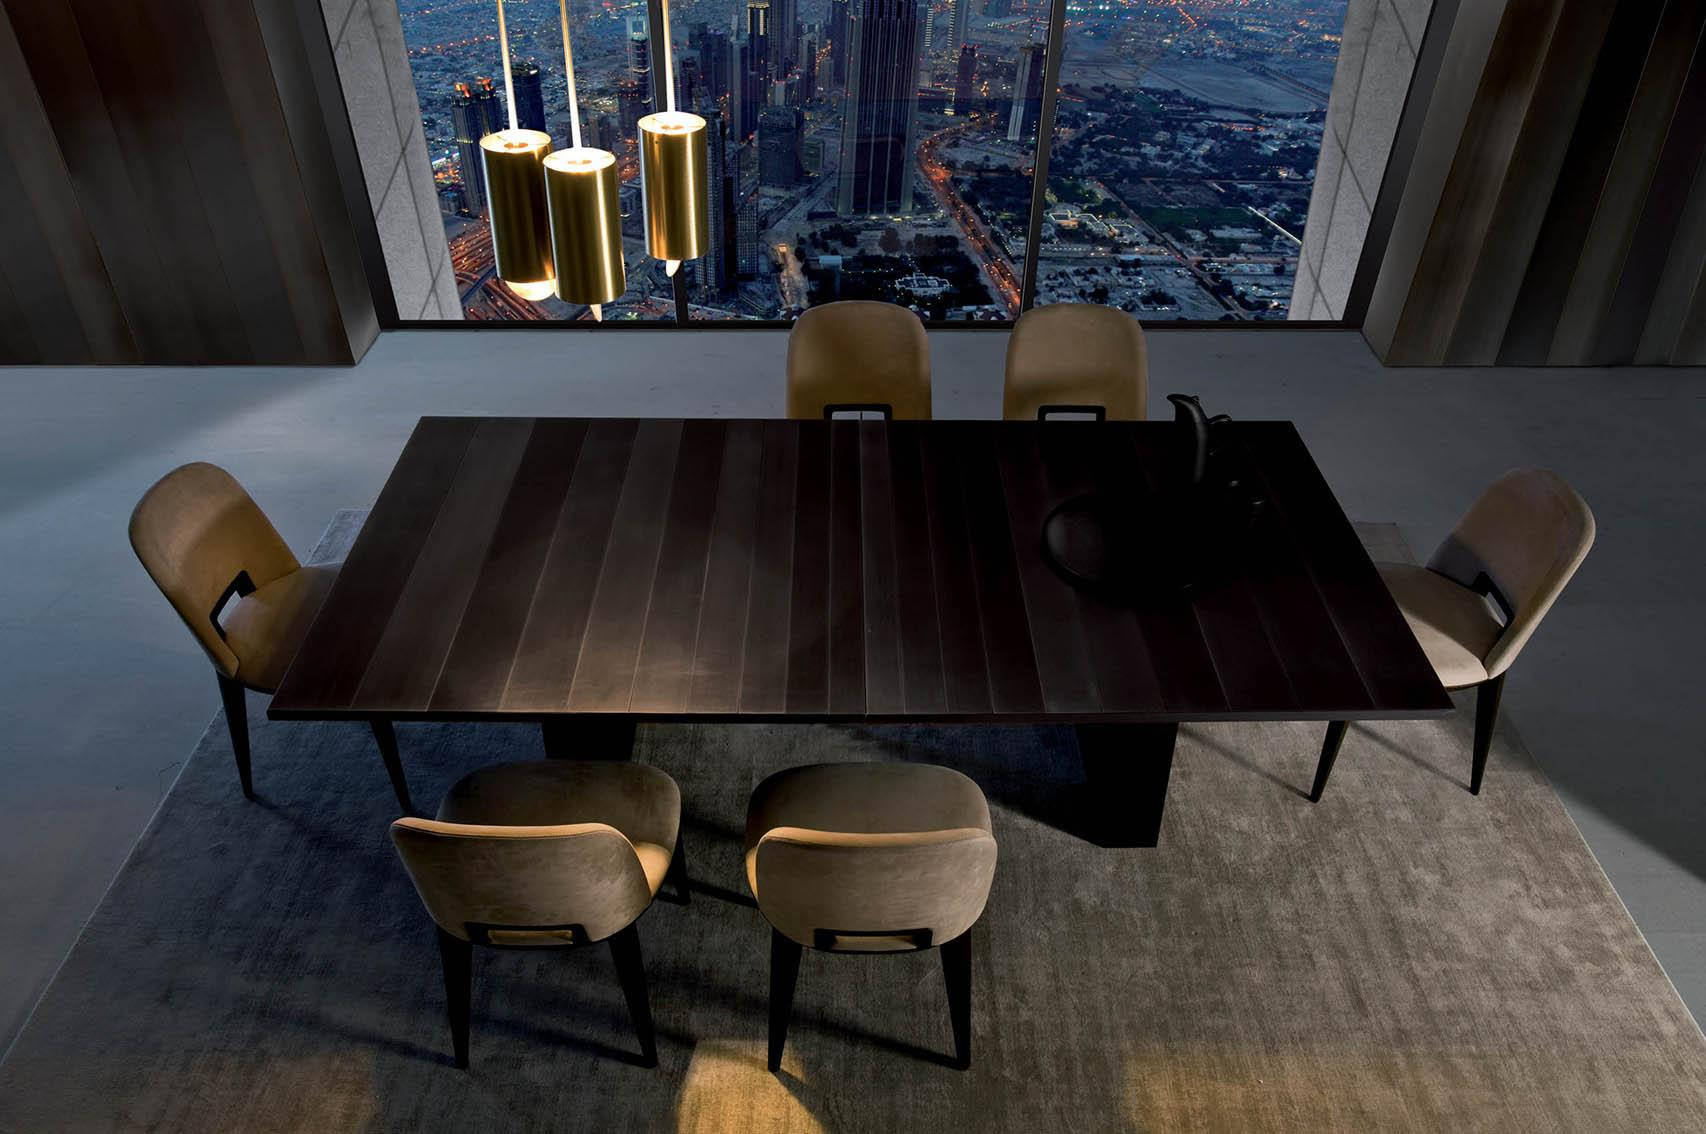 Laurameroni luxury modern made to measure bespoke tables for contemporary interior decor and design